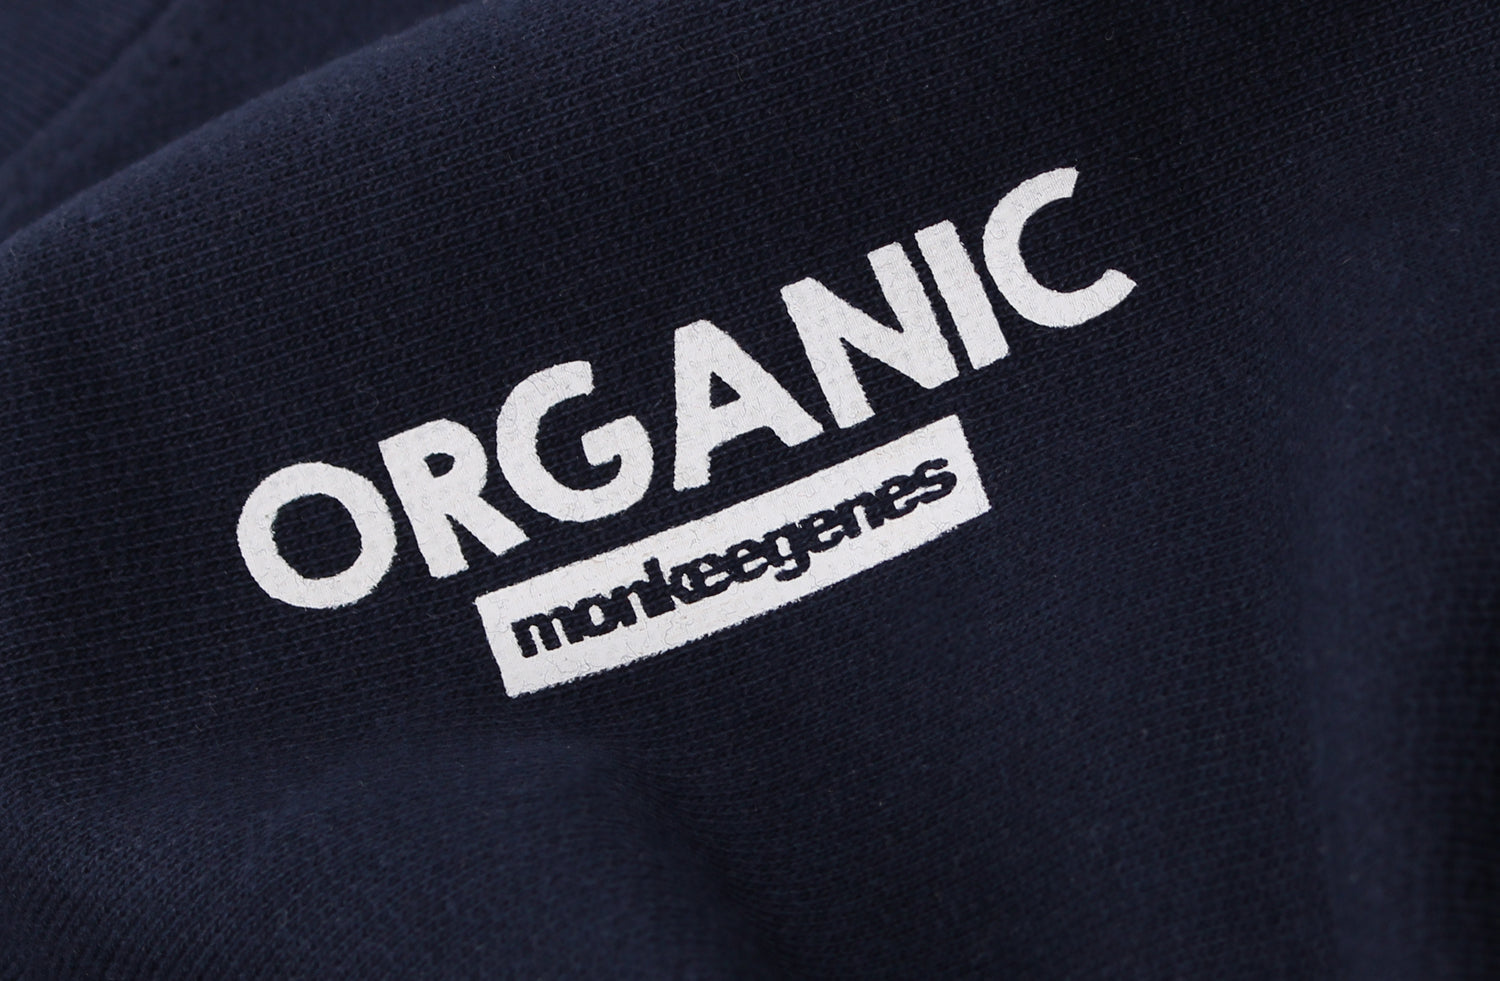 Men's Organic Cotton Crew Sweat in Navy - Monkee Genes Organic Jeans Denim - Men's Hoodies Monkee Genes Official  Monkee Genes Official